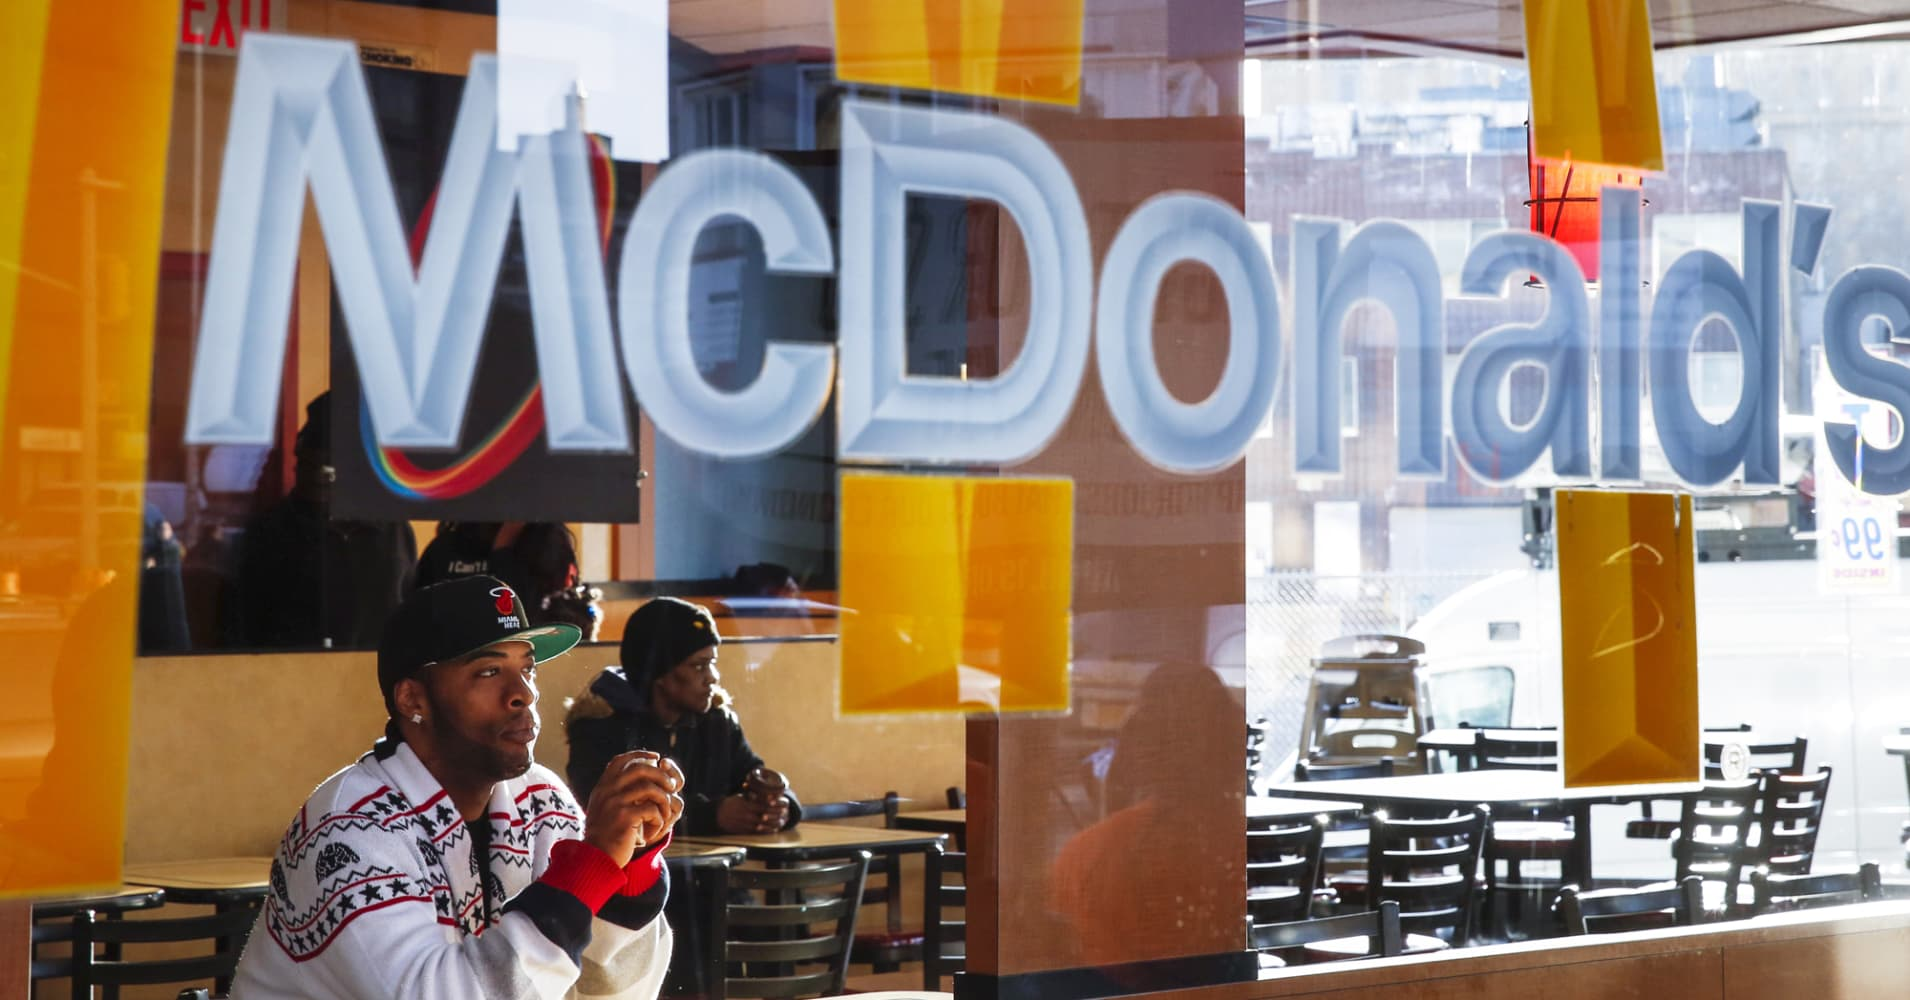 McDonald's to spend $6 billion on nationwide restaurant makeovers